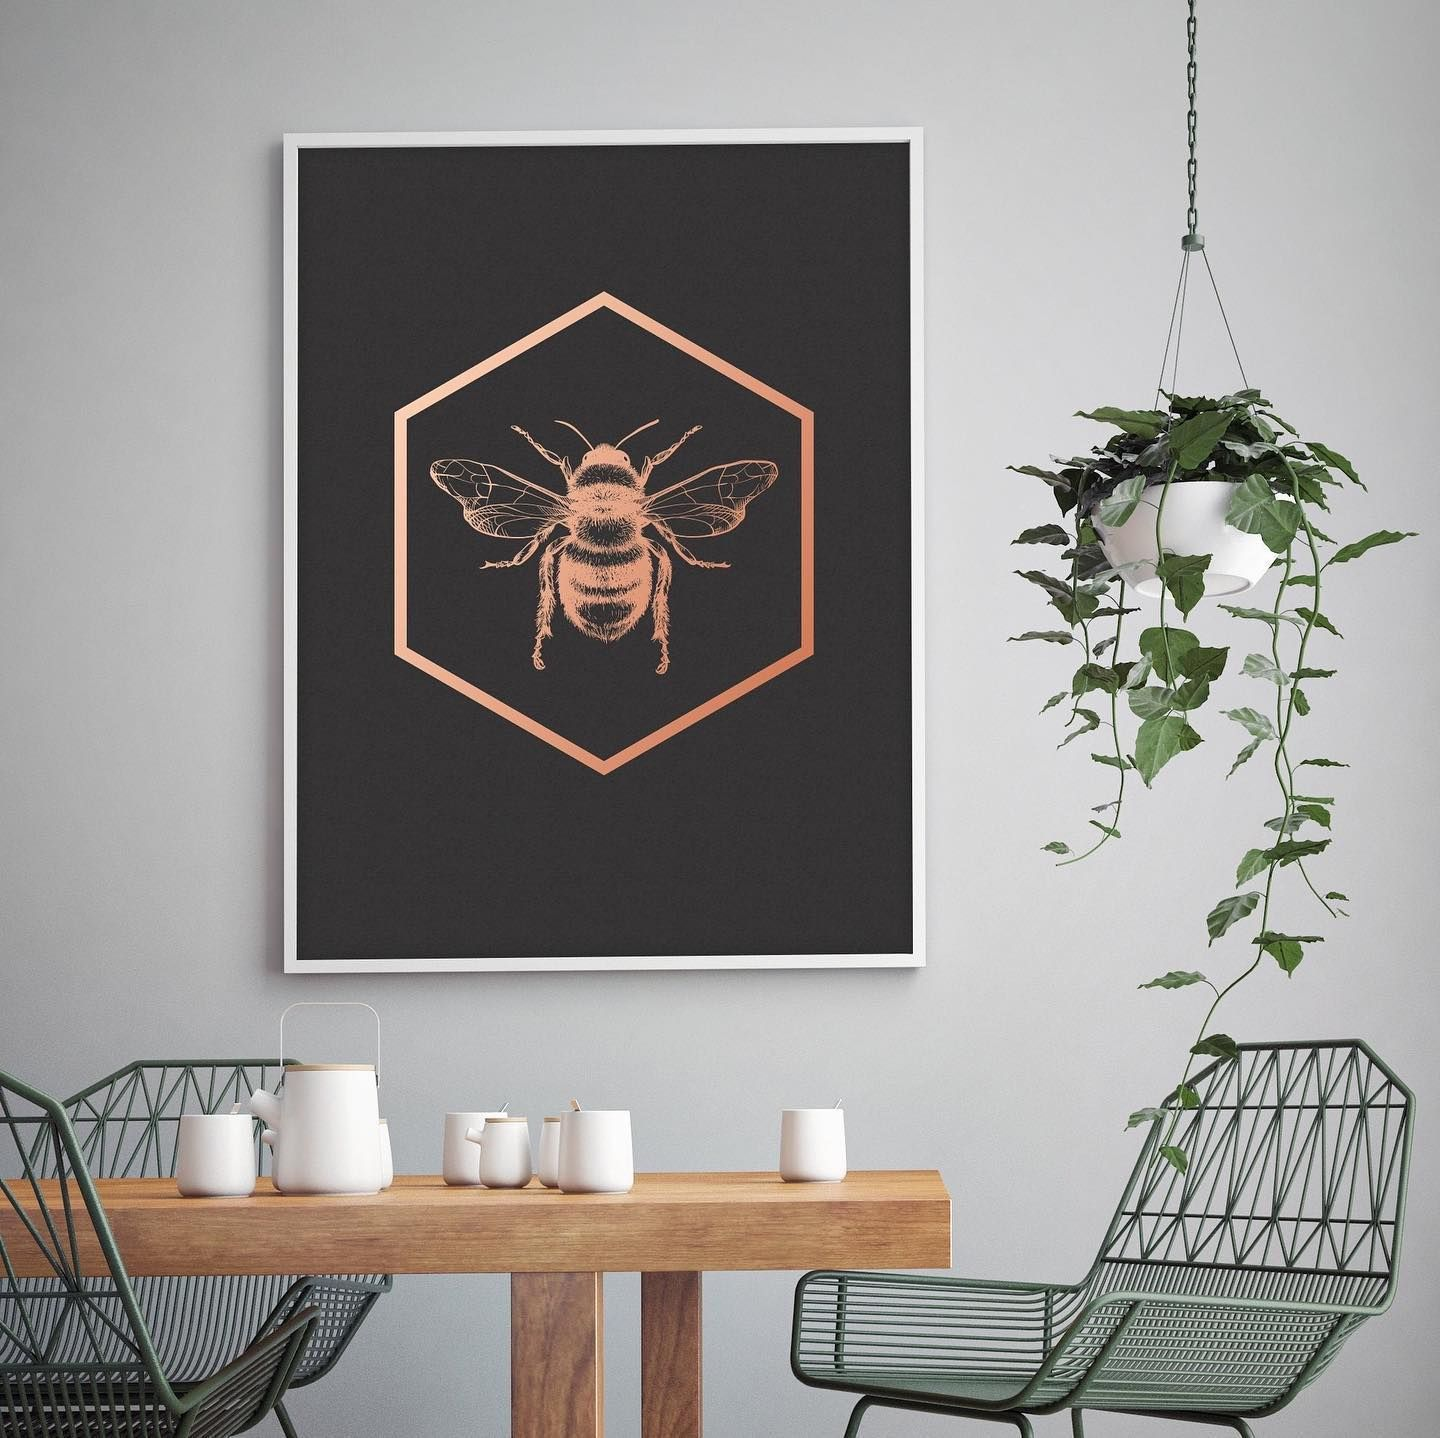 Bumble Bee Print Foiled Art. Insect Wall Art. Cool Hanging